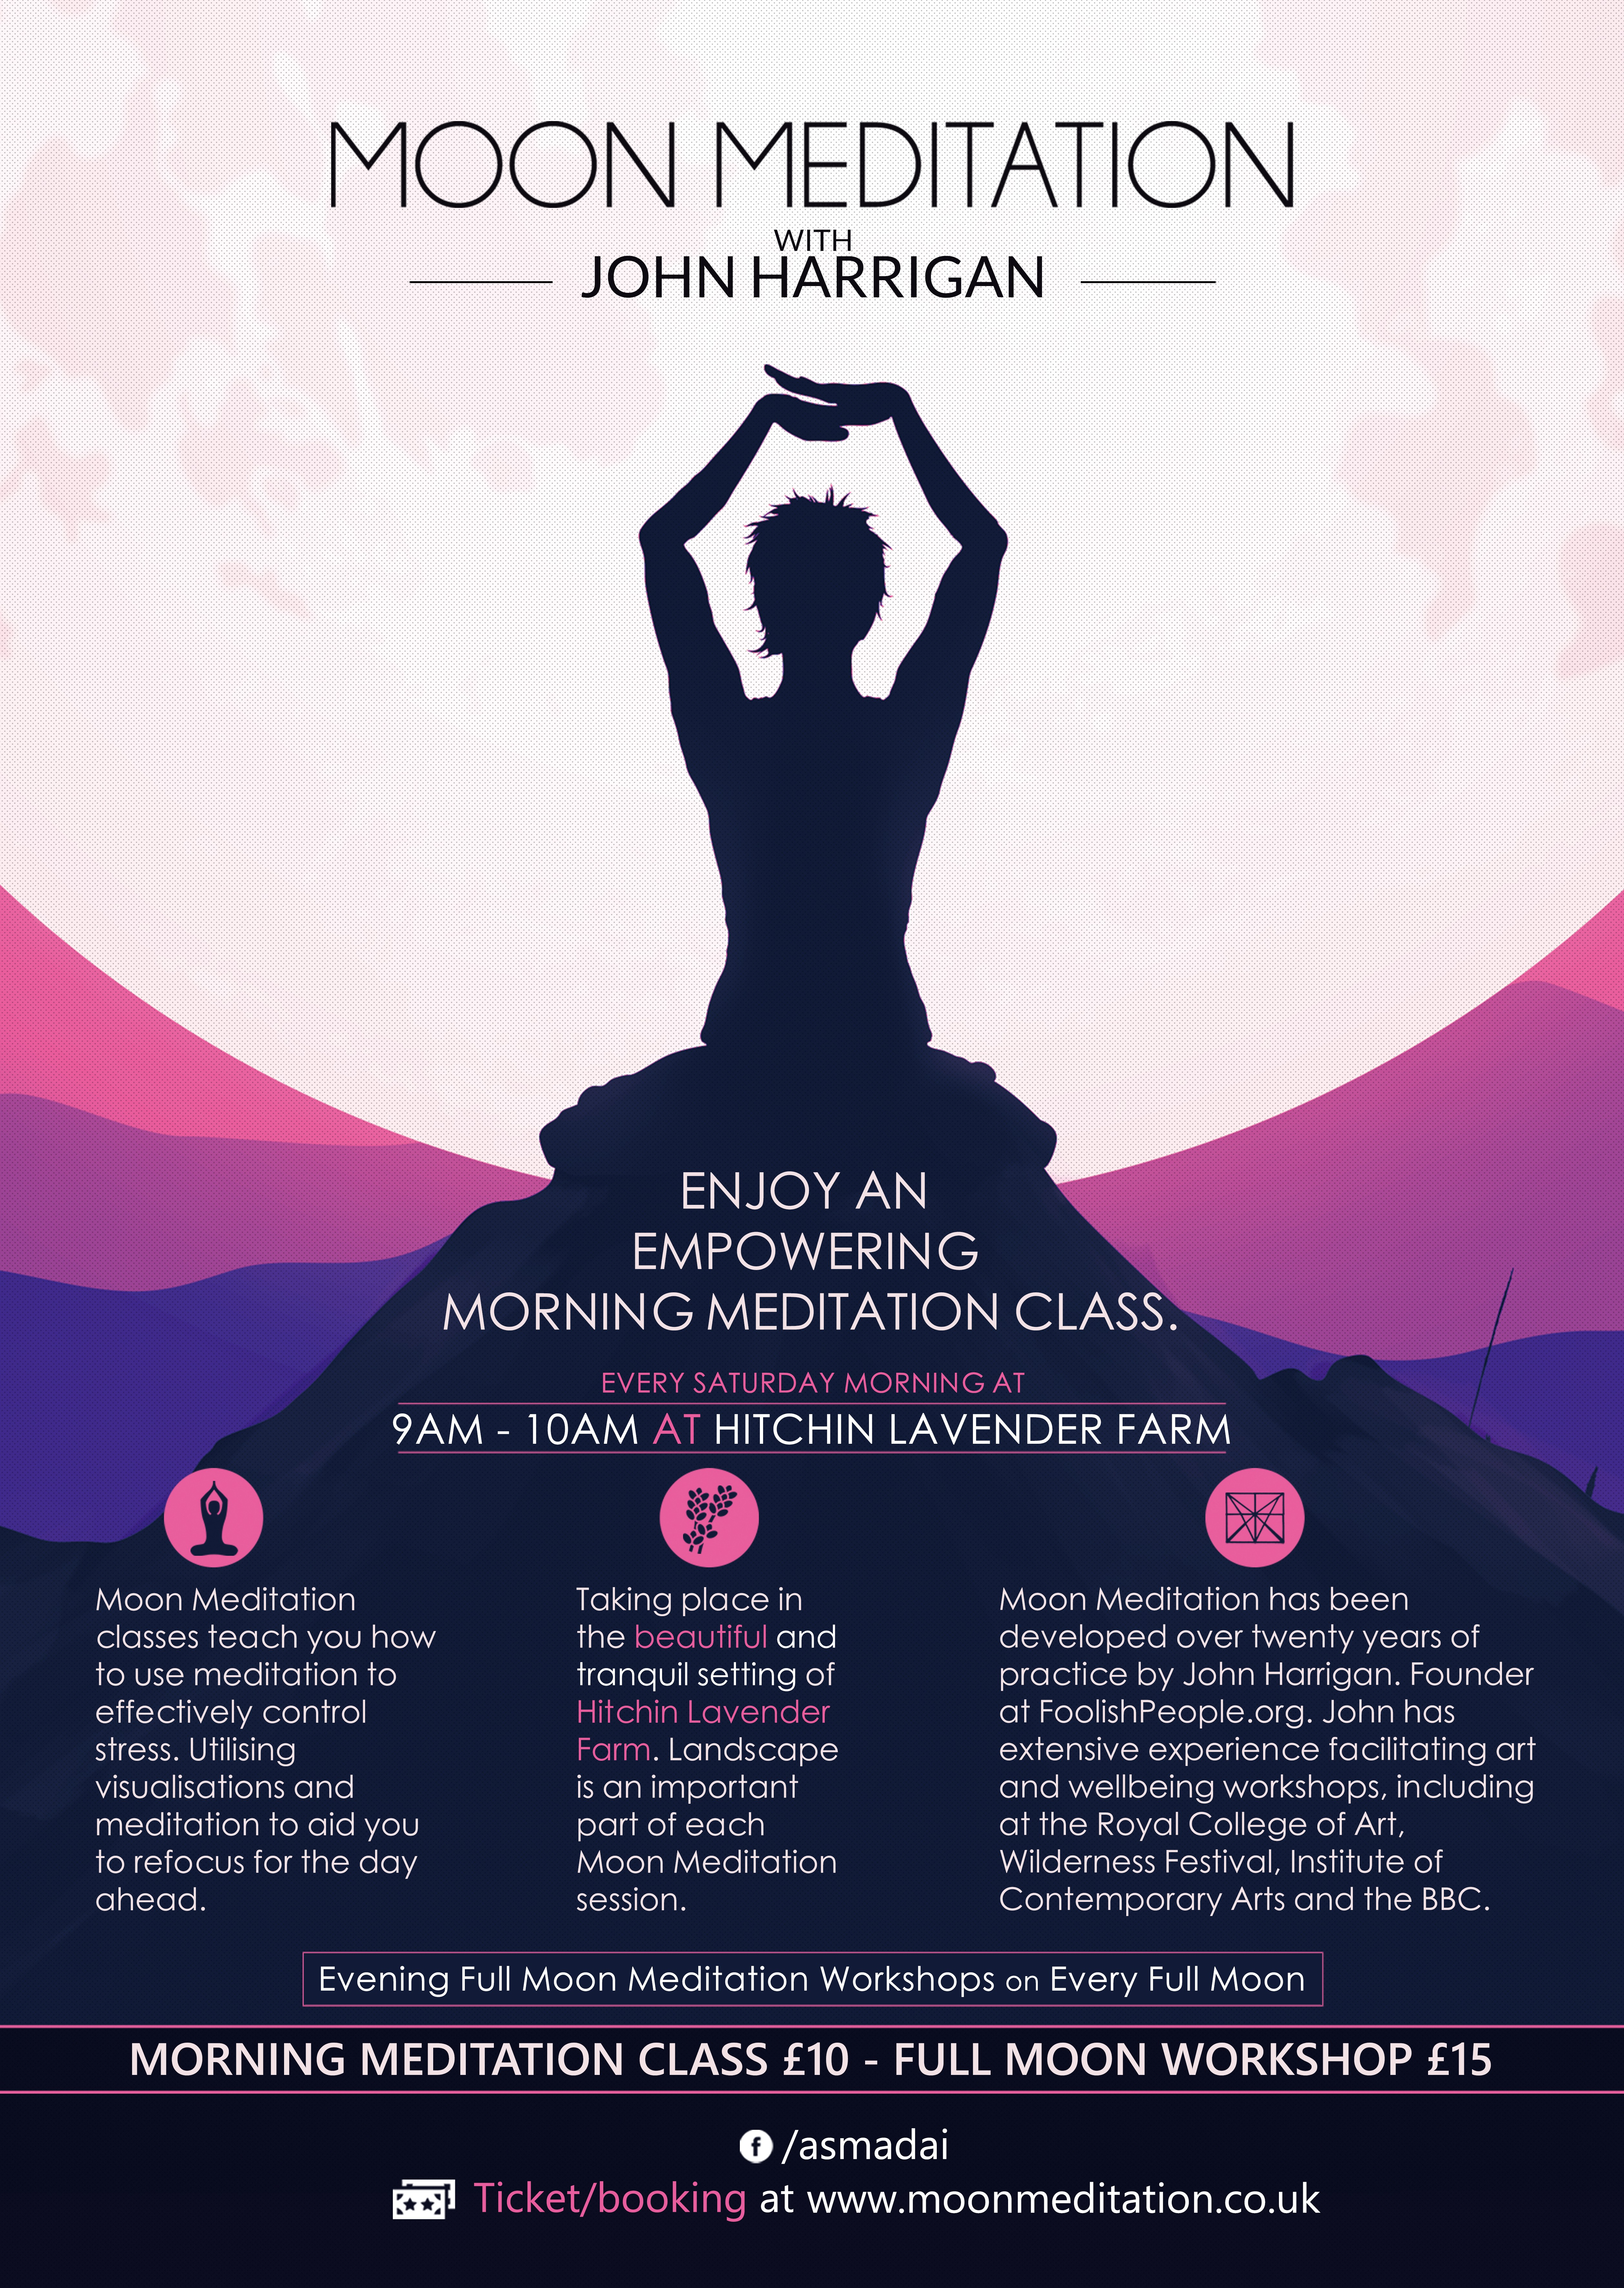 Mondo style poster for a Meditation Class